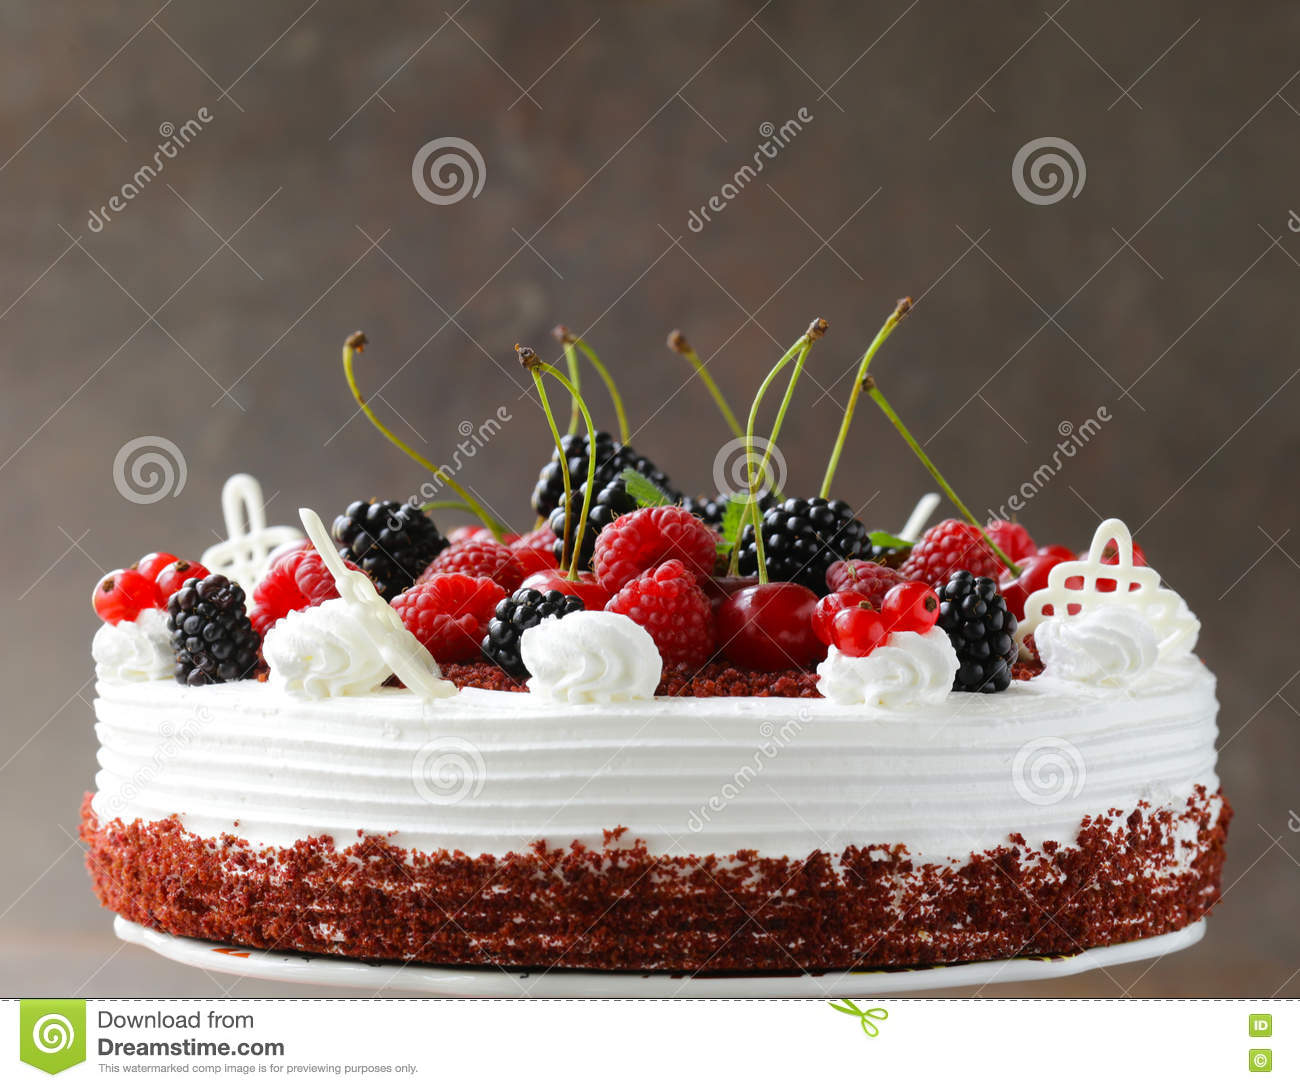 Festive Cake Red Velvet Decorated With Berries Stock Image